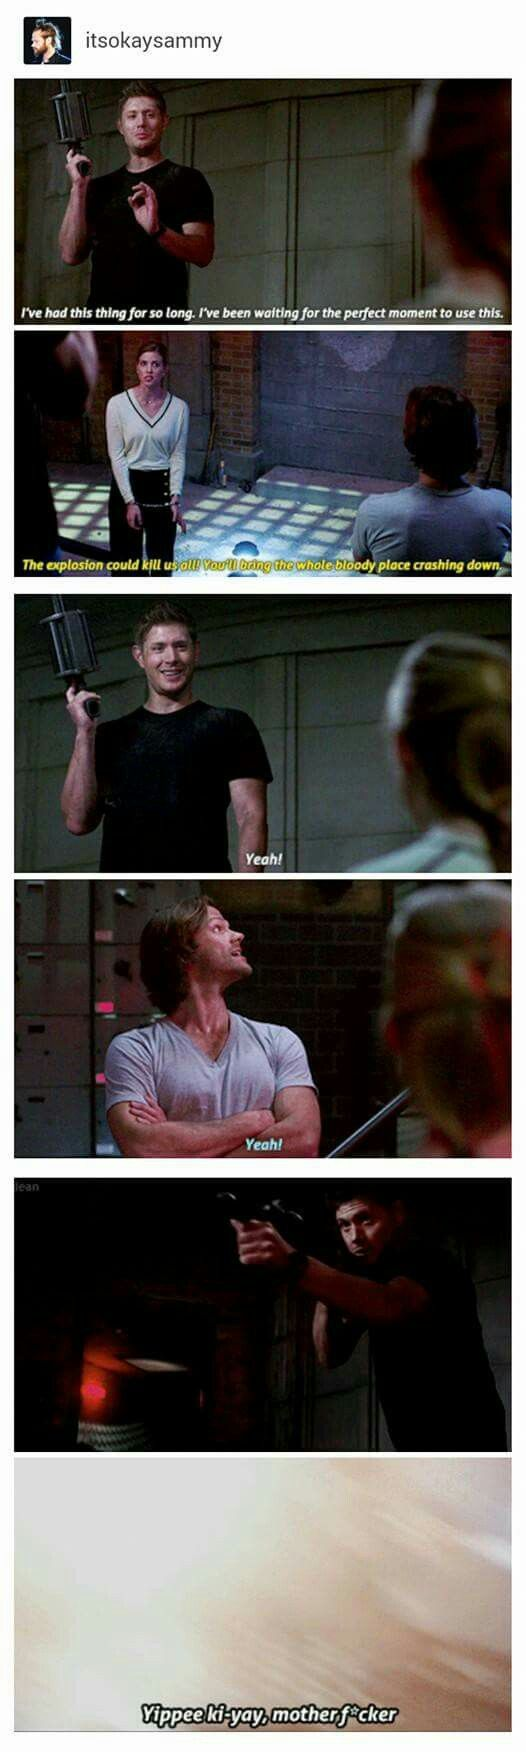 AS PREVIOUSLY MENTIONED THE SEASON 12 FINALE FUCKED ME UP but at least Dean got to use his grenade launcher, I mean he's had it all season...